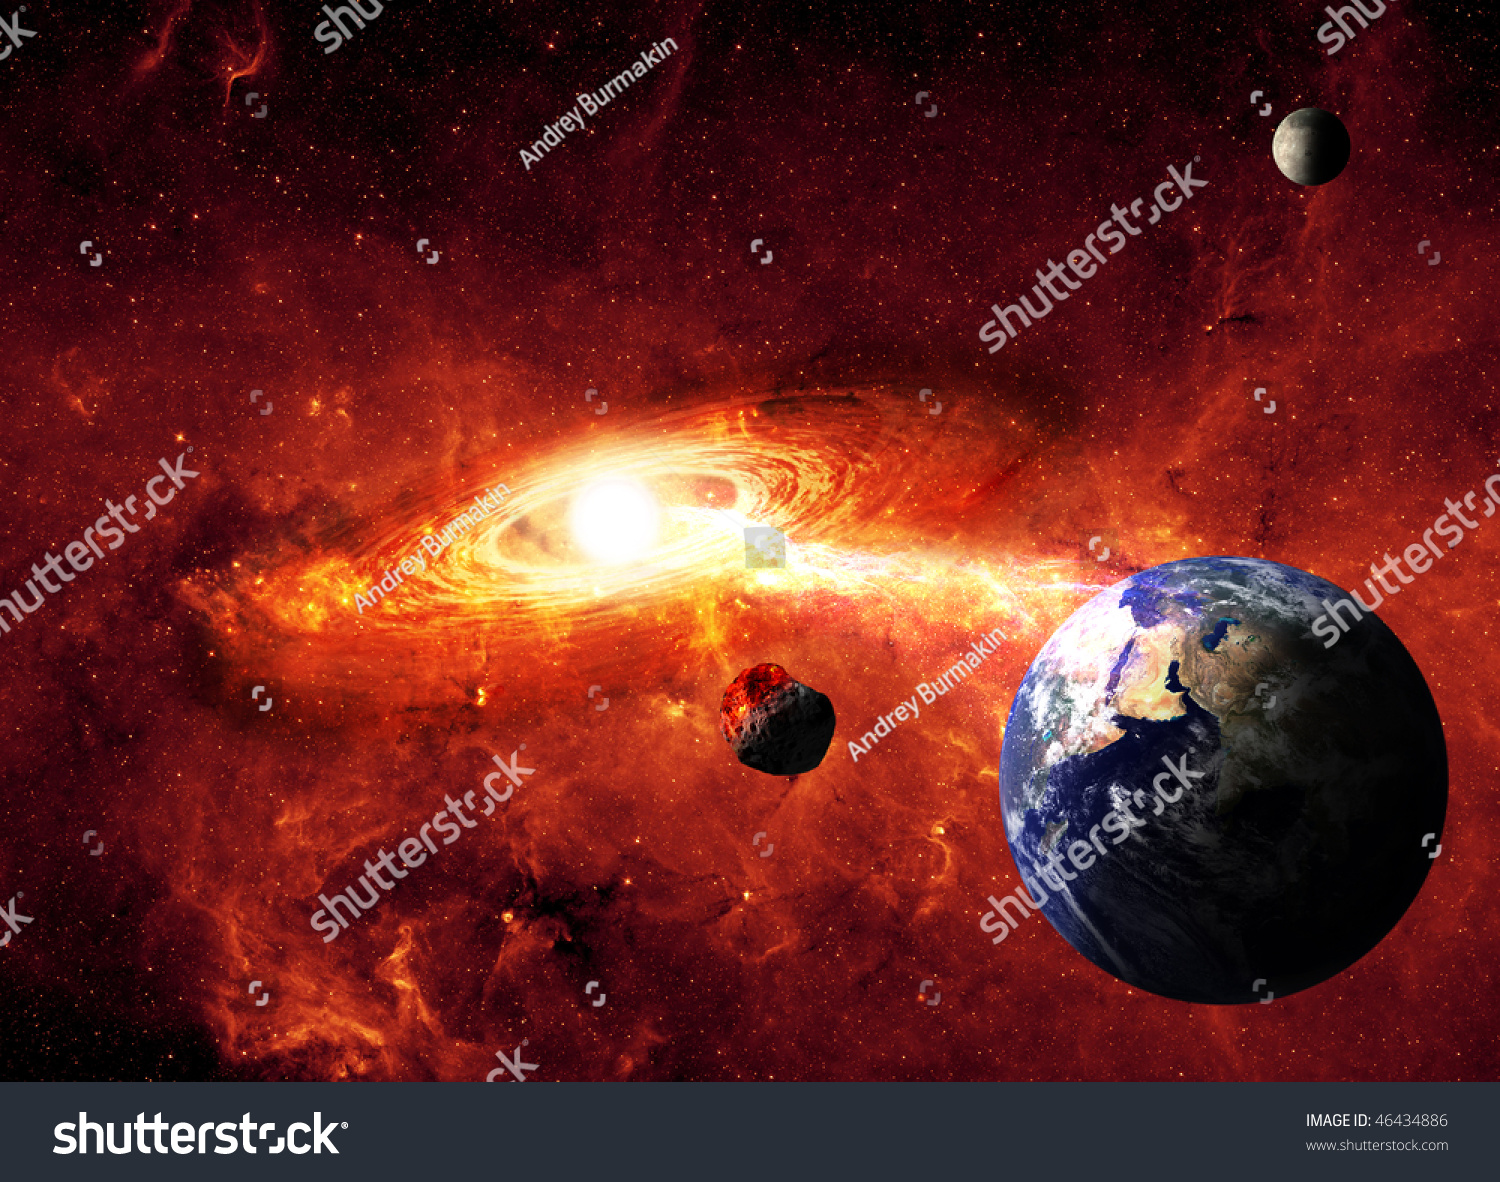 Meteor Falling To The Earth Stock Photo 46434886 ...